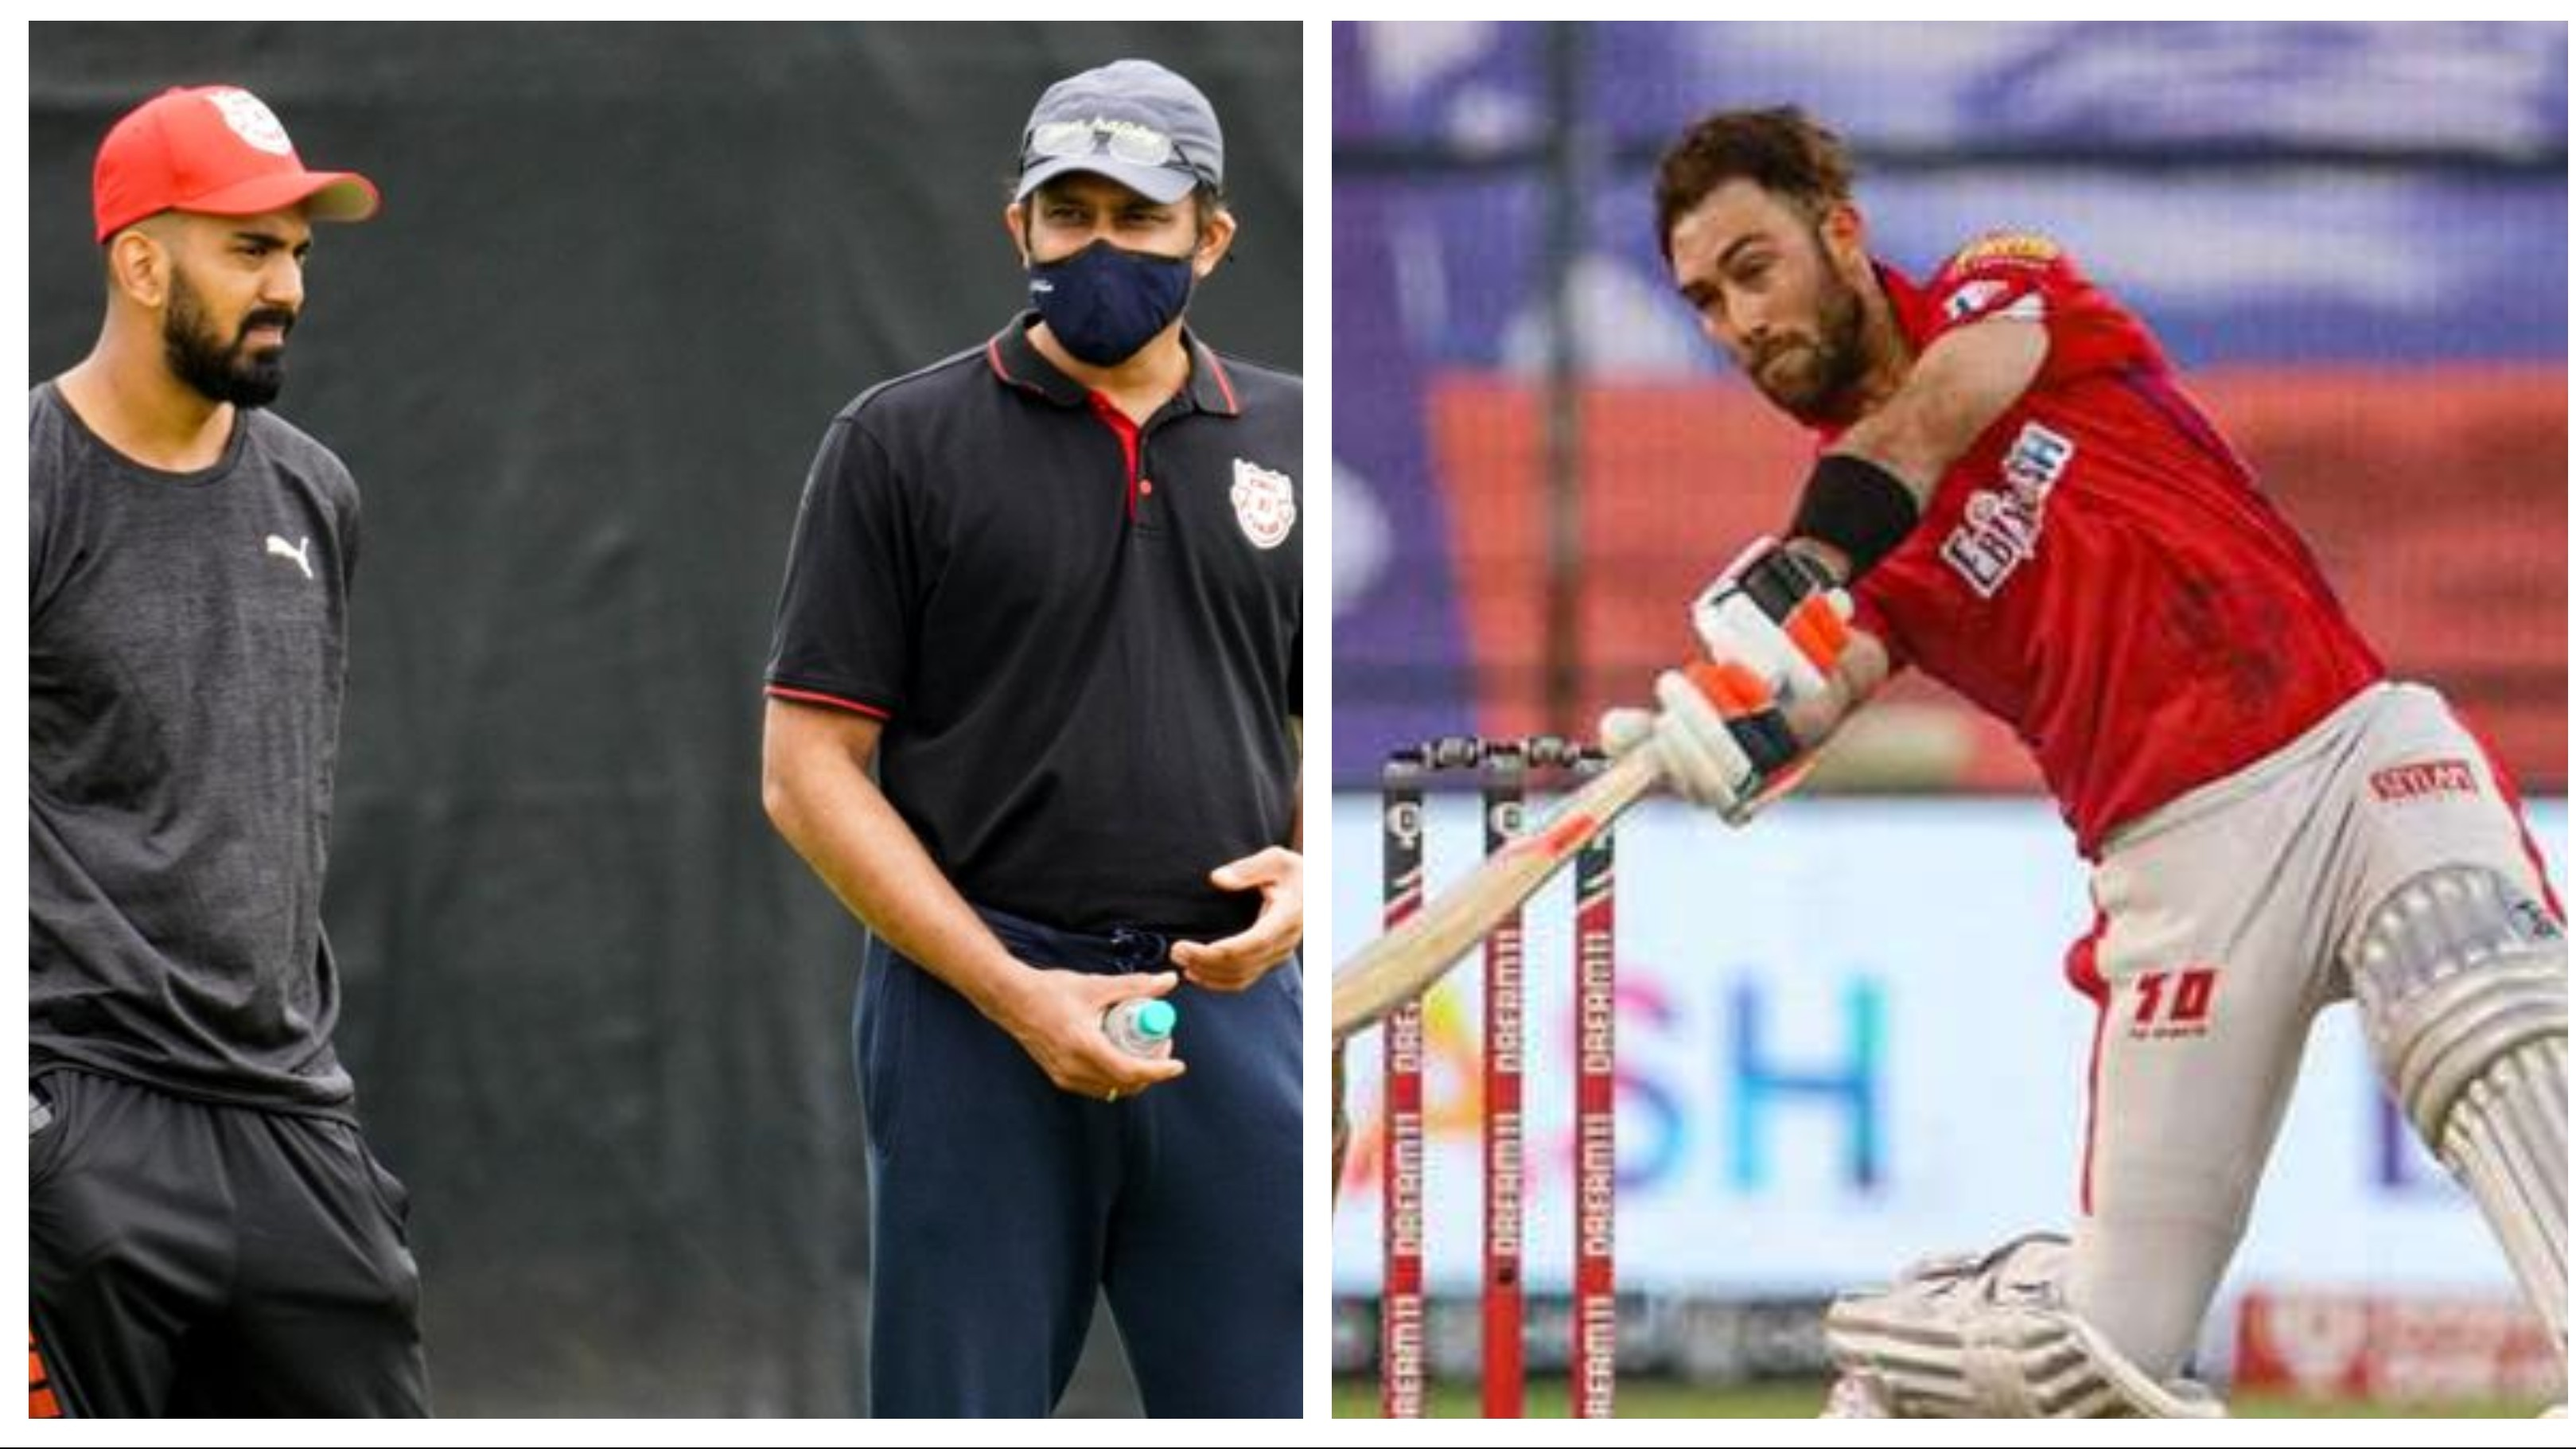 IPL 2020: KXIP to retain Rahul-Kumble duo; Maxwell to be released before next season, says report